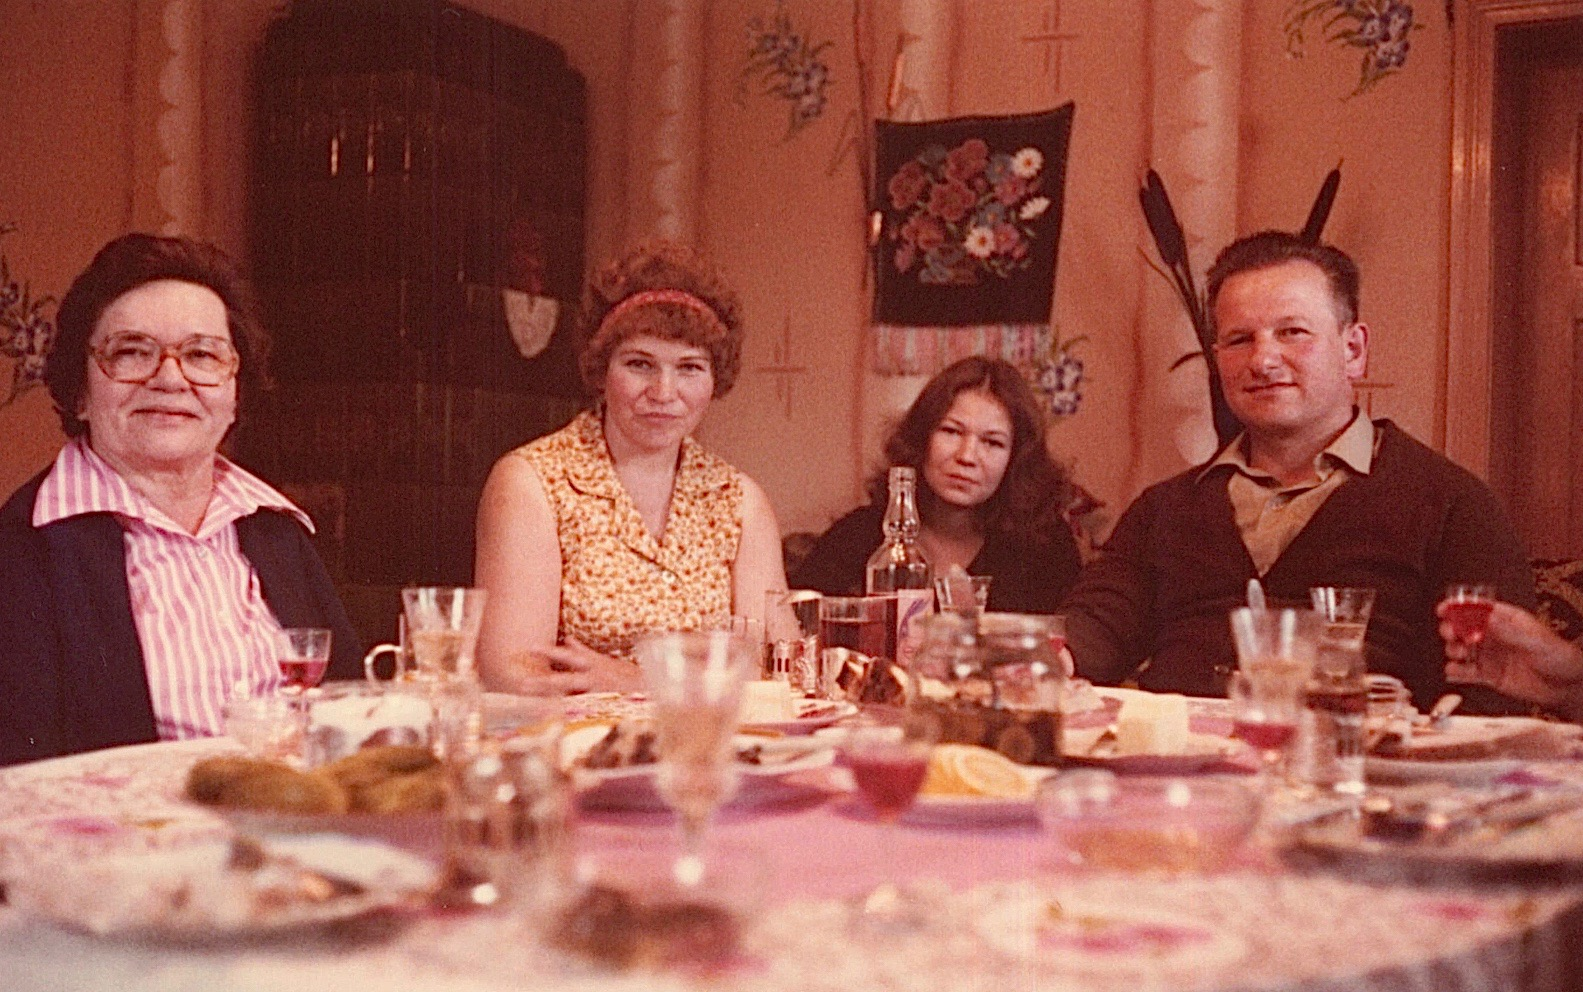 Mayme Bogden Baldyga, Jadga (Anthony's wife), Irena (Anthony's daughter), & Anthony in their home, 1978